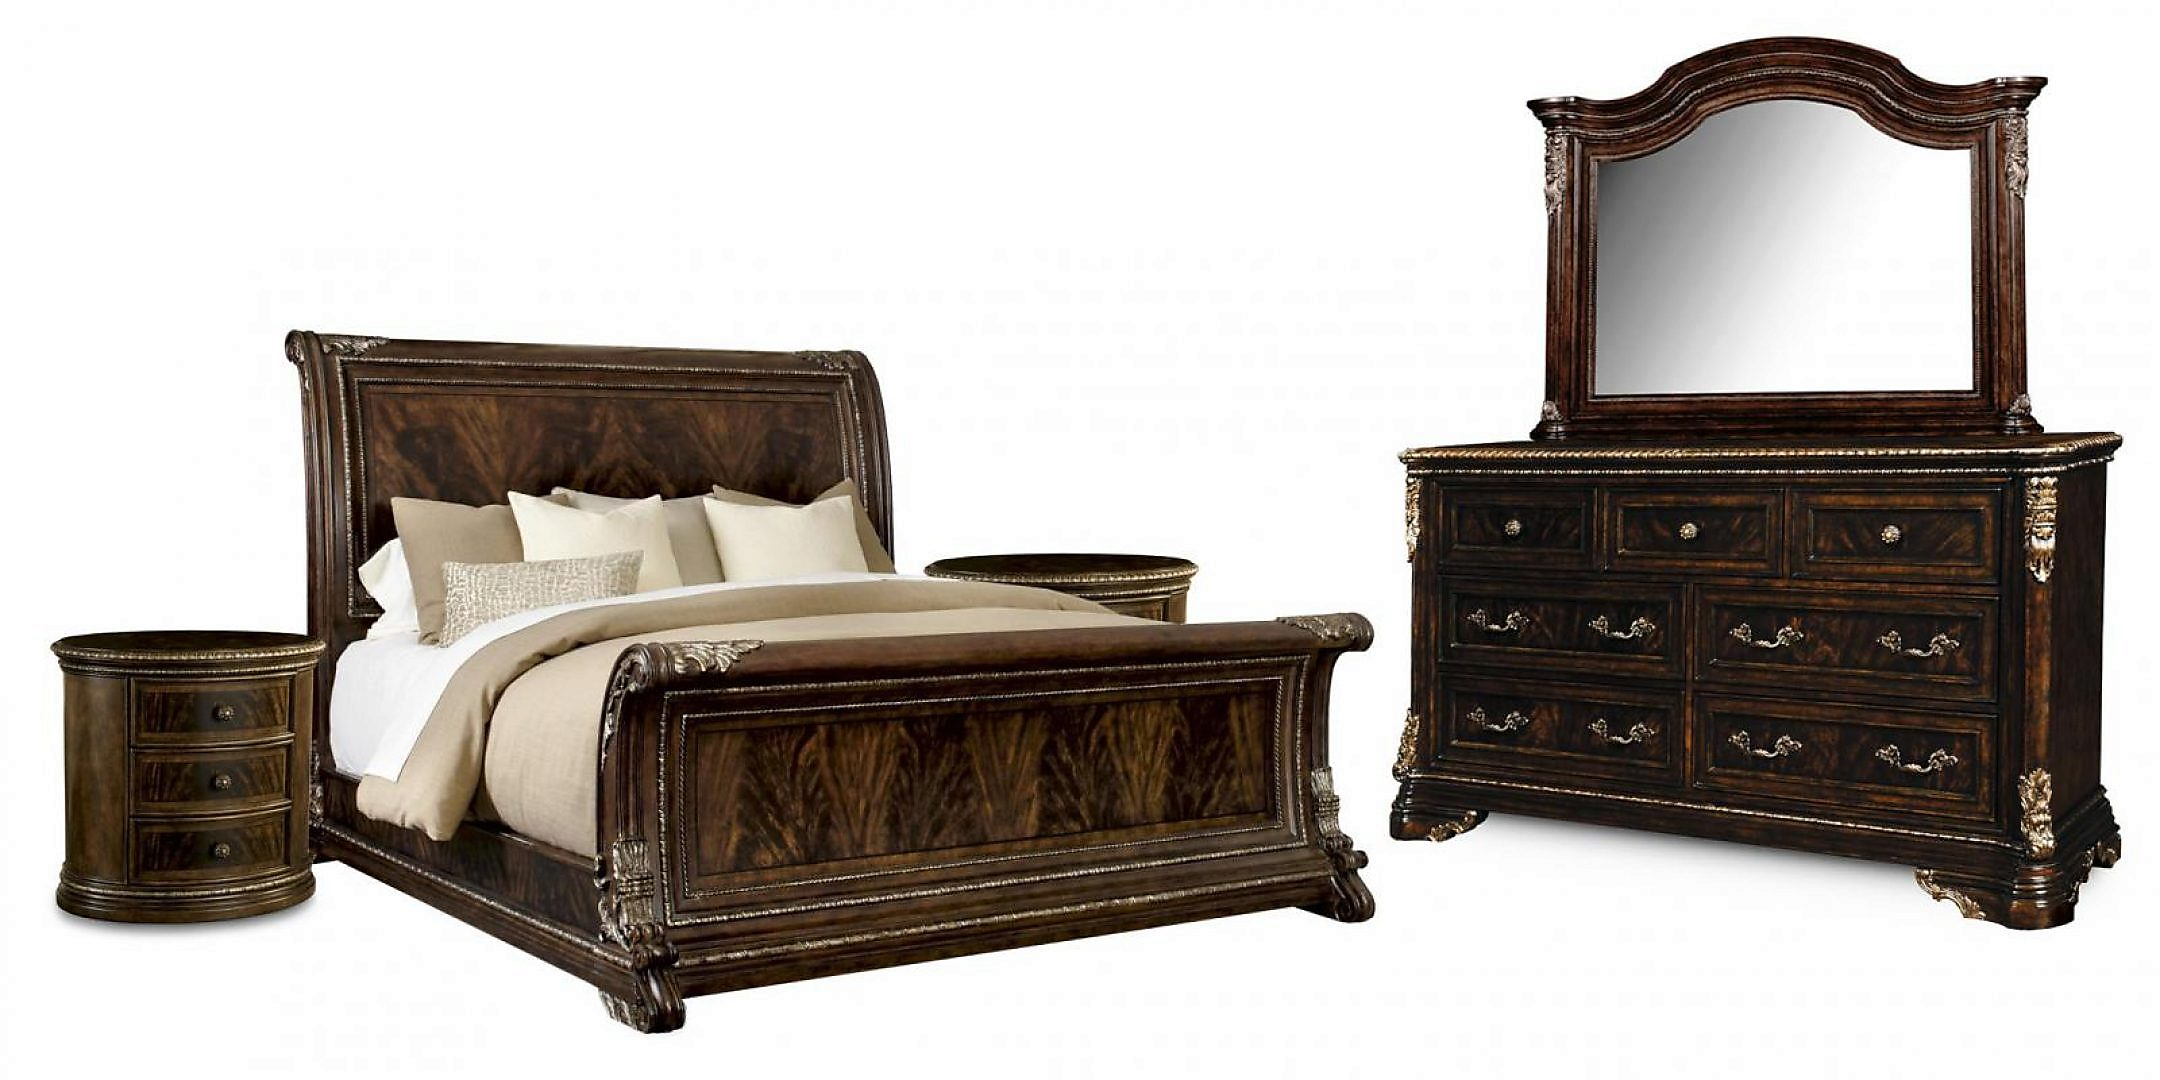 Traditional 18th Century Cherry Wood King Sleigh Bedroom Set 5Pcs HD-80002